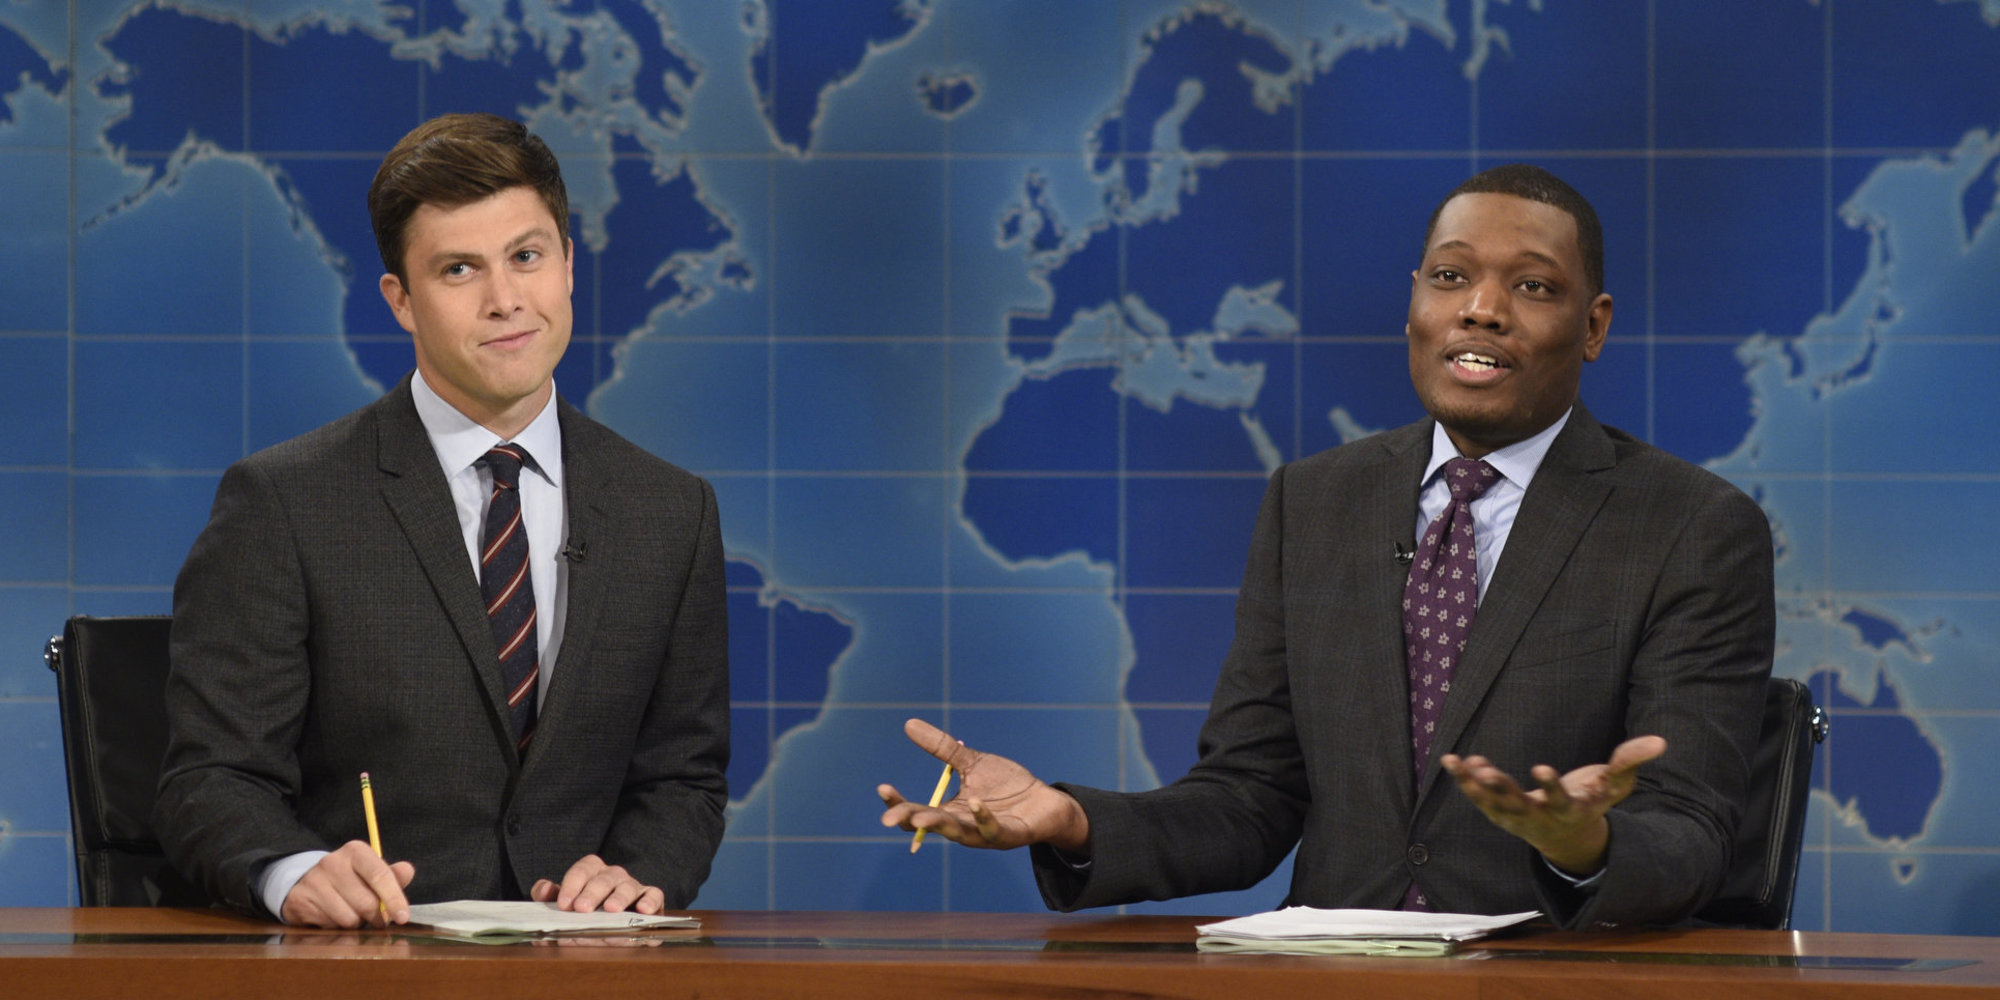 Colin Jost and Michael Che hosting Weekend Update on SNL